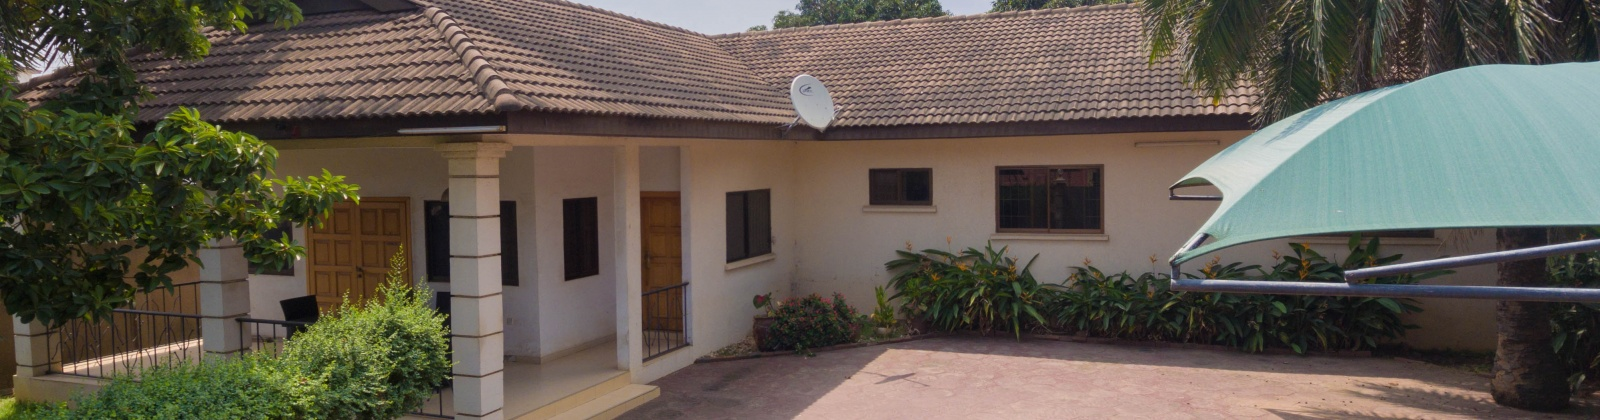 36 yiyiwa Street, Abelenkpe, Accra, Accra, Greater Accra, 3 Bedrooms Bedrooms, ,Detached House,For Sale,36 yiyiwa Street, Abelenkpe, Accra ,1023